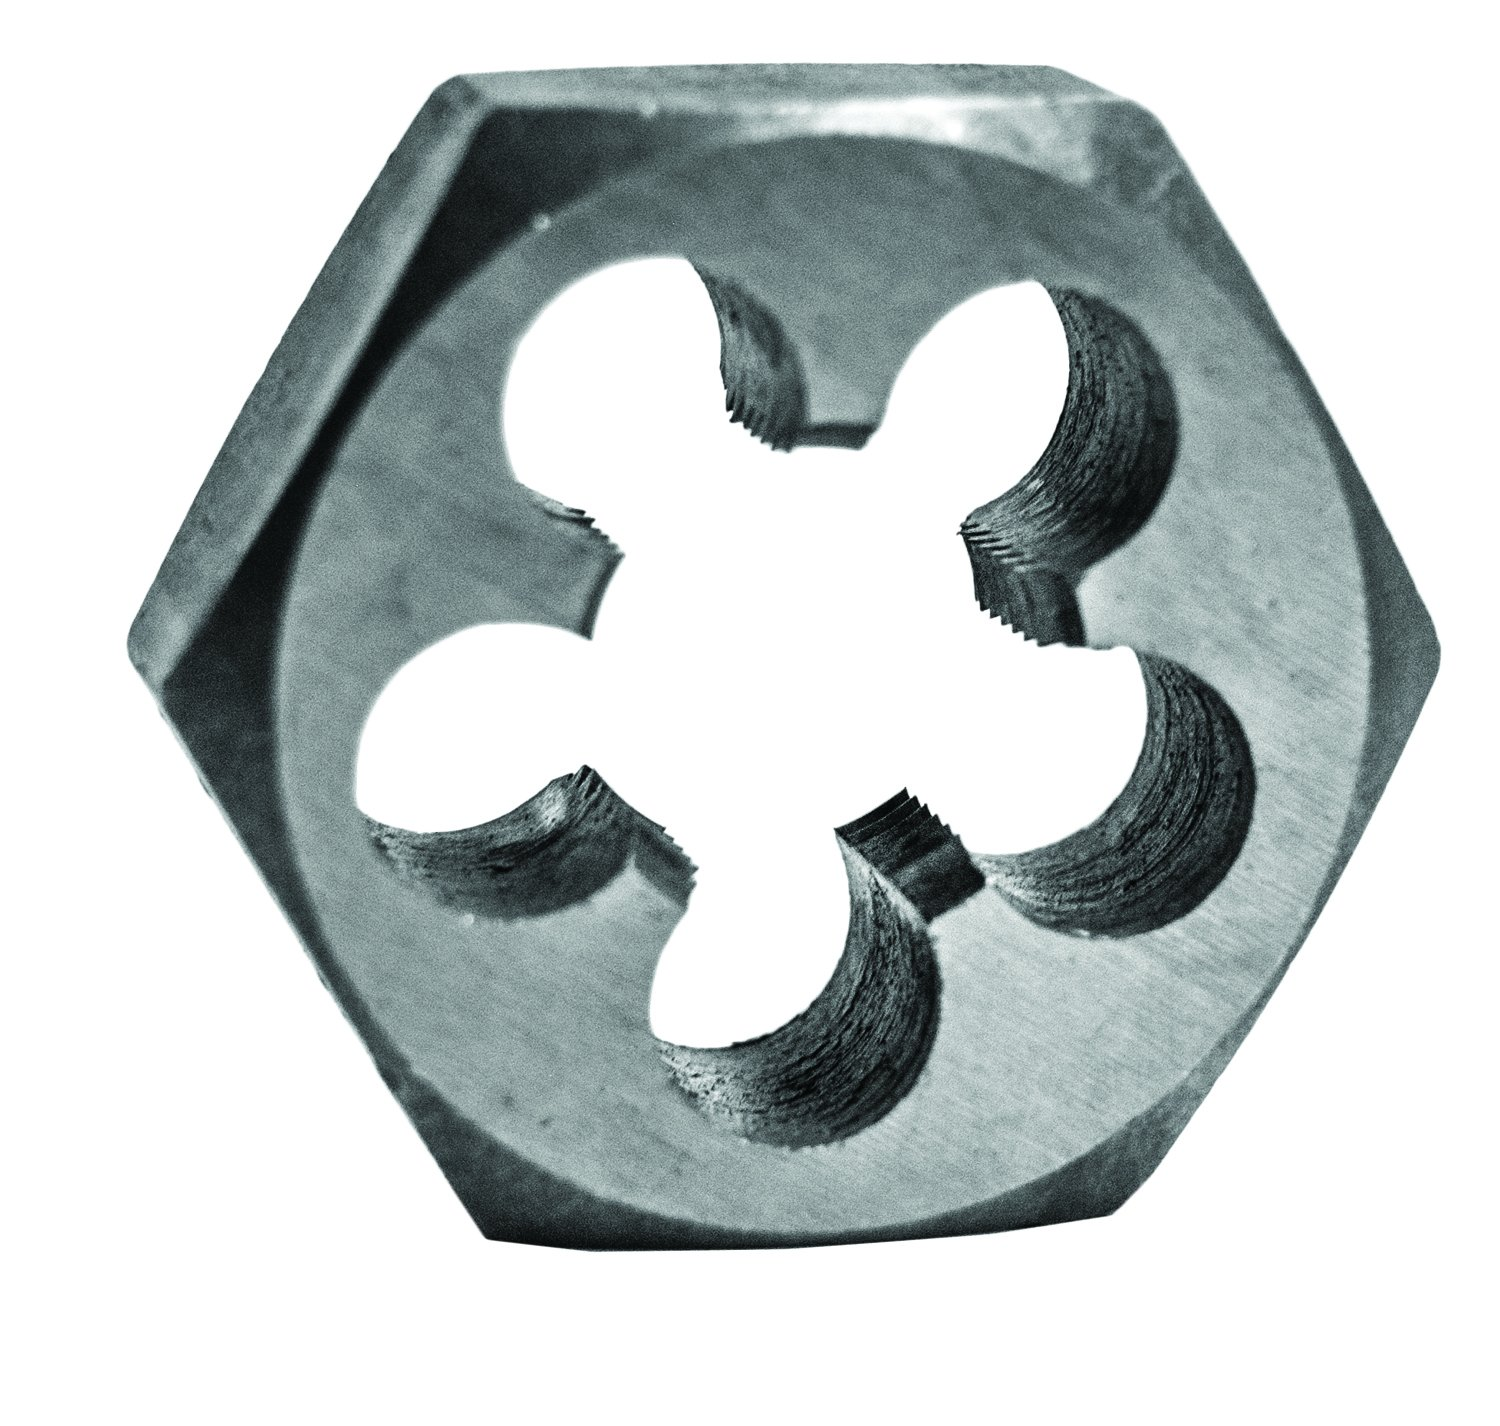 Century Drill & Tool 98218 High Carbon Steel Fractional Hexagon Die, 7/8-14 NF